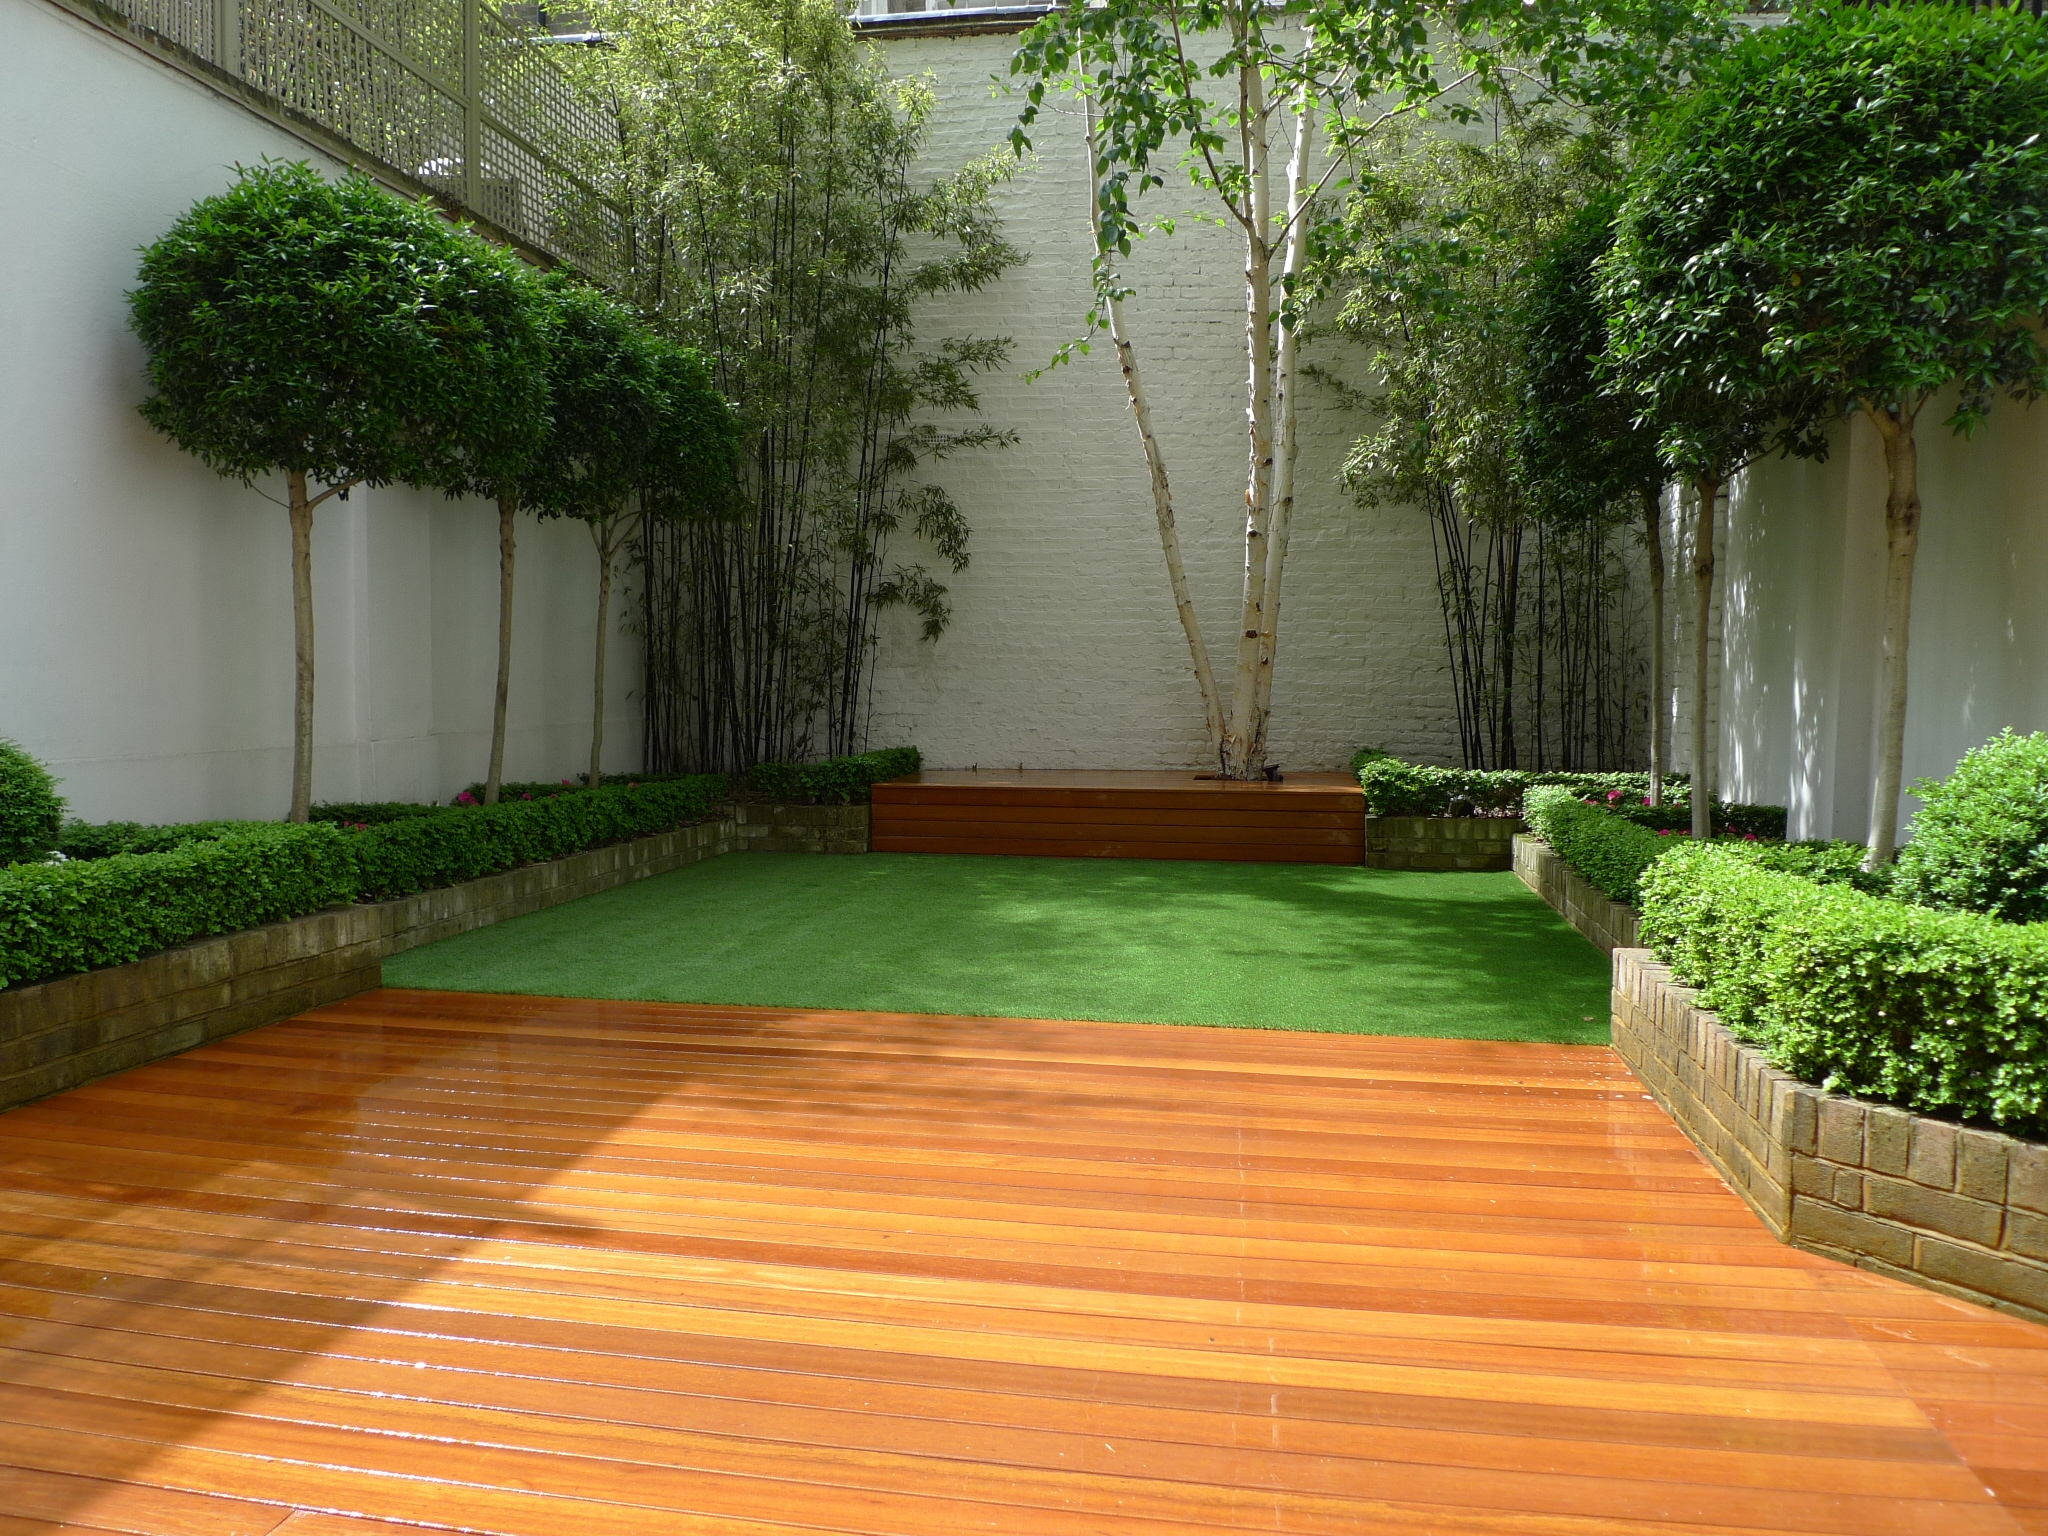 Chelsea garden design hardwood decking artificial grass for Modern garden decking designs